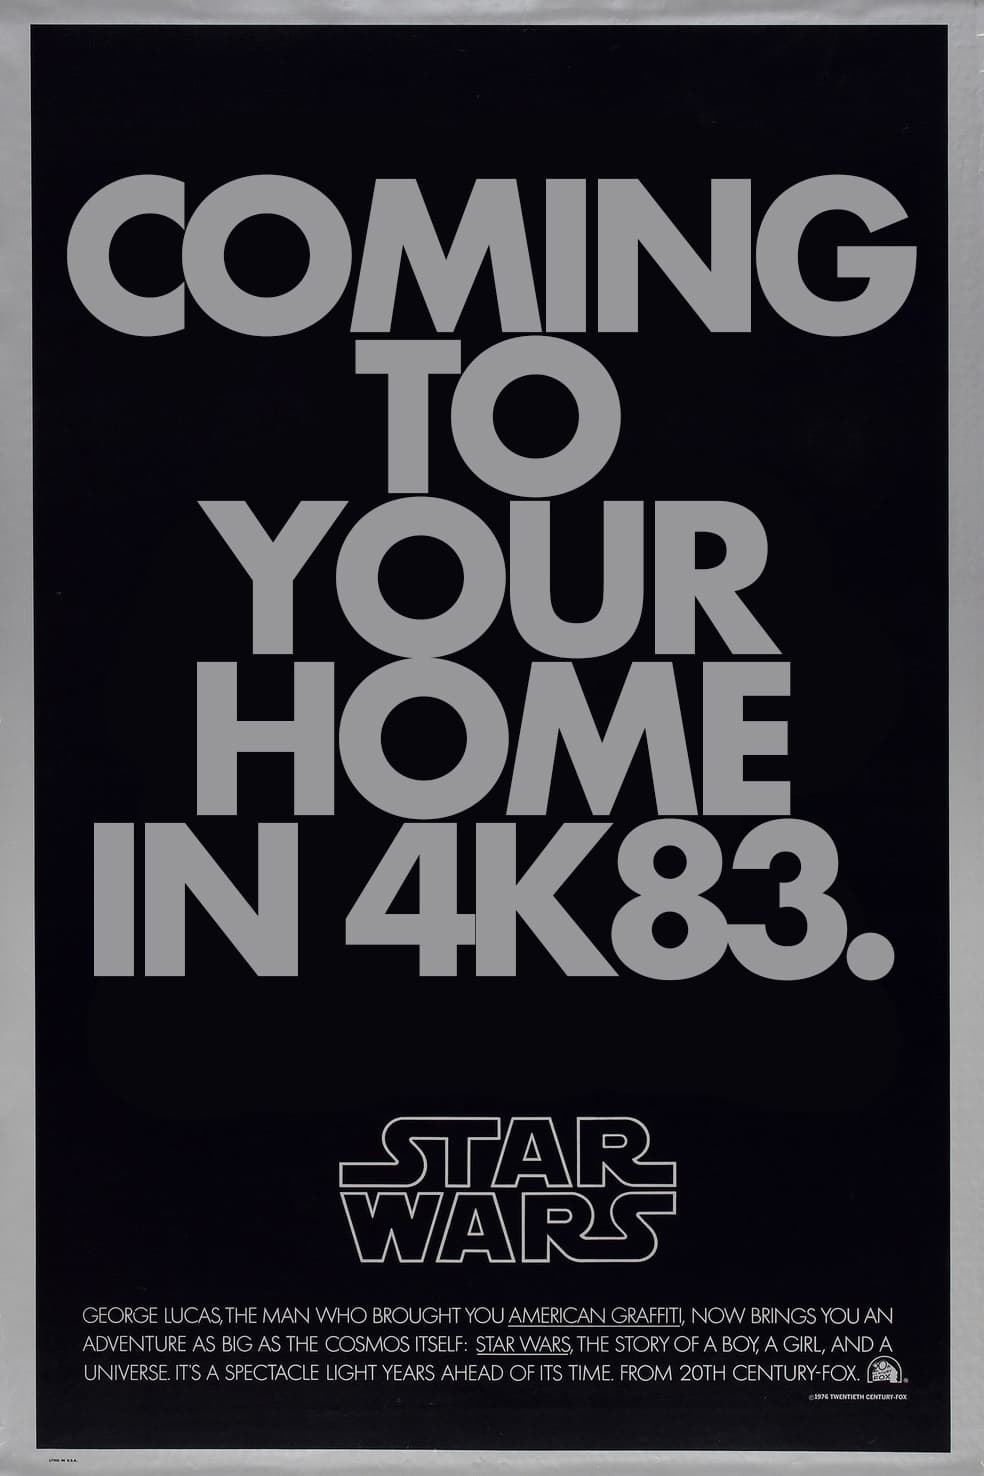 Return of the Jedi: 4K83